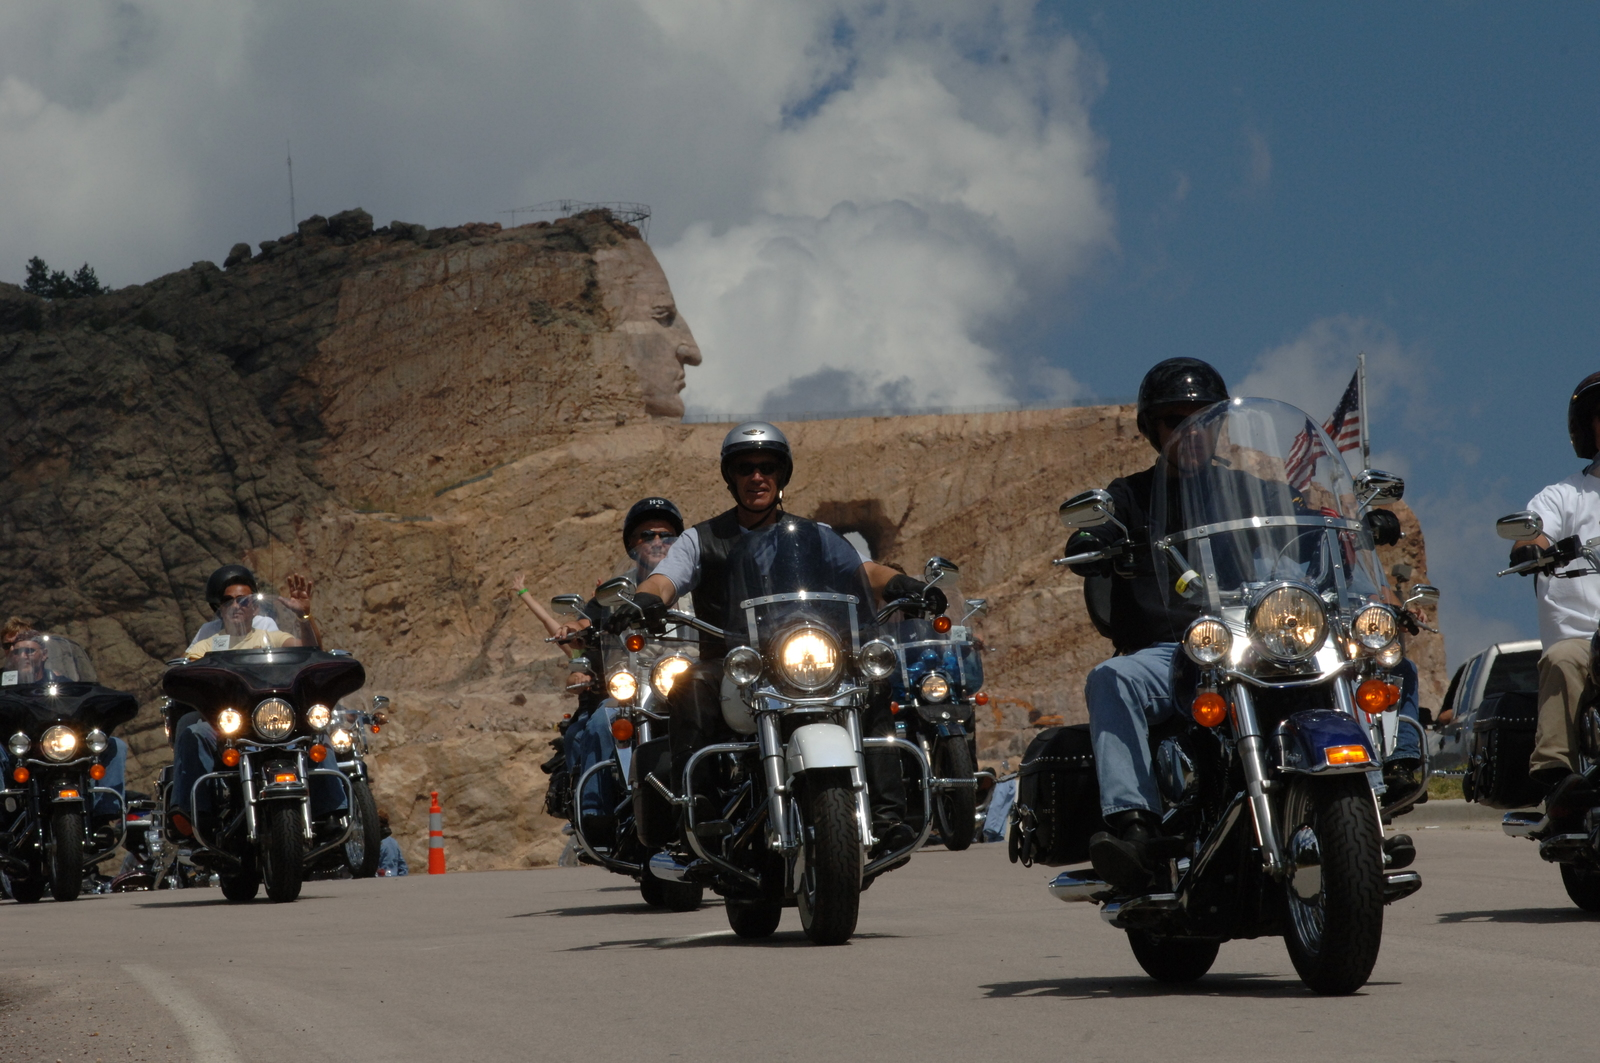 [Assignment: 48-DPA-SOI_K_Sturgis_8-7-06_Rally] Visit of Secretary Dirk Kempthorne to Sturgis, South Dakota, [to participate in the 66th Annual] Sturgis Motorcycle Rally, [and to view the area's landscapes and wildlife] [48-DPA-SOI_K_Sturgis_8-7-06_Rally_IOD_2979.JPG]